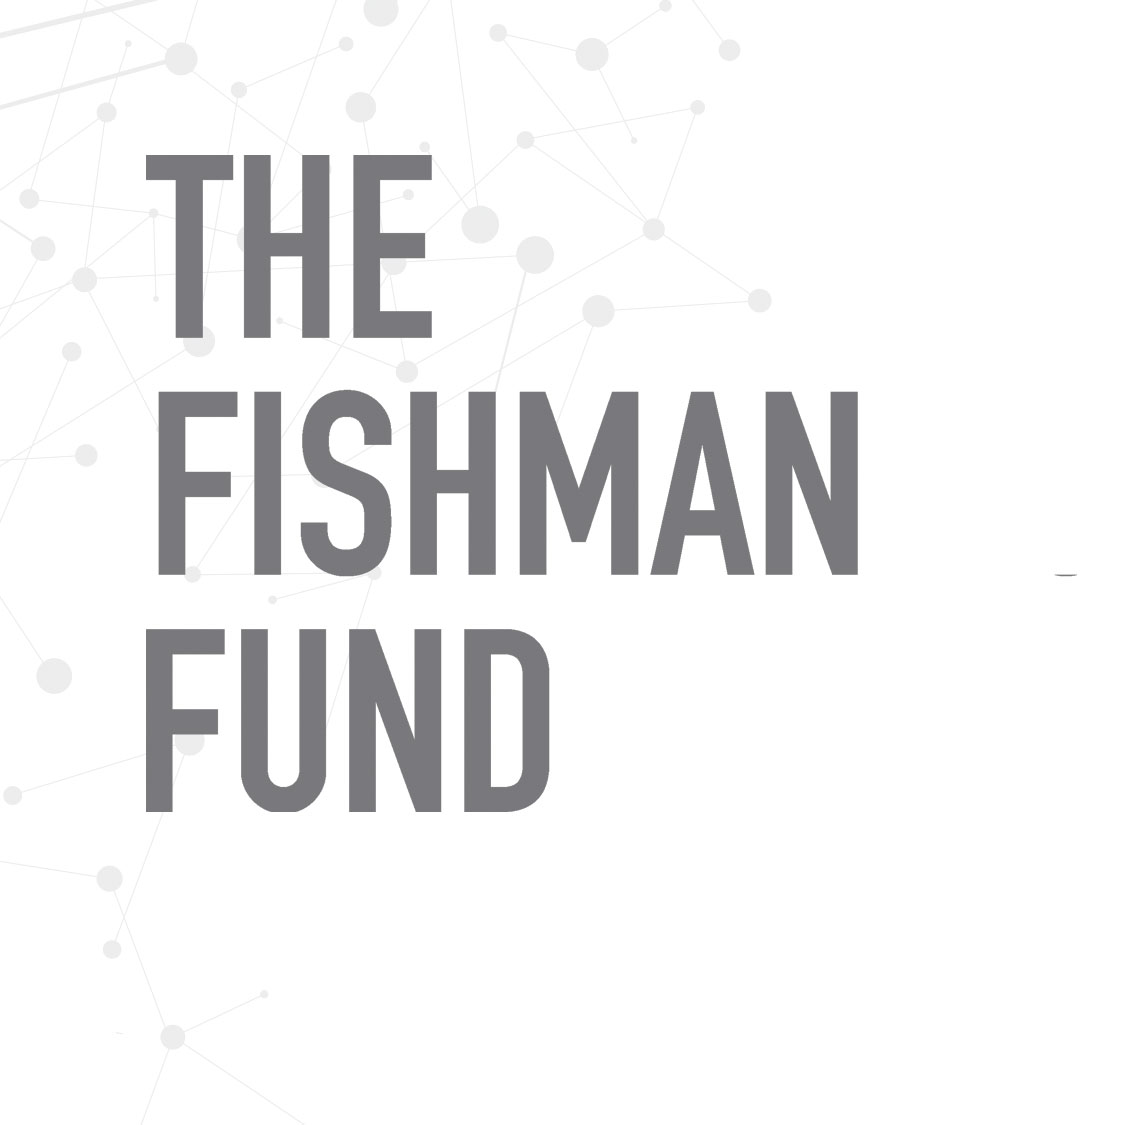 fishman fund logo